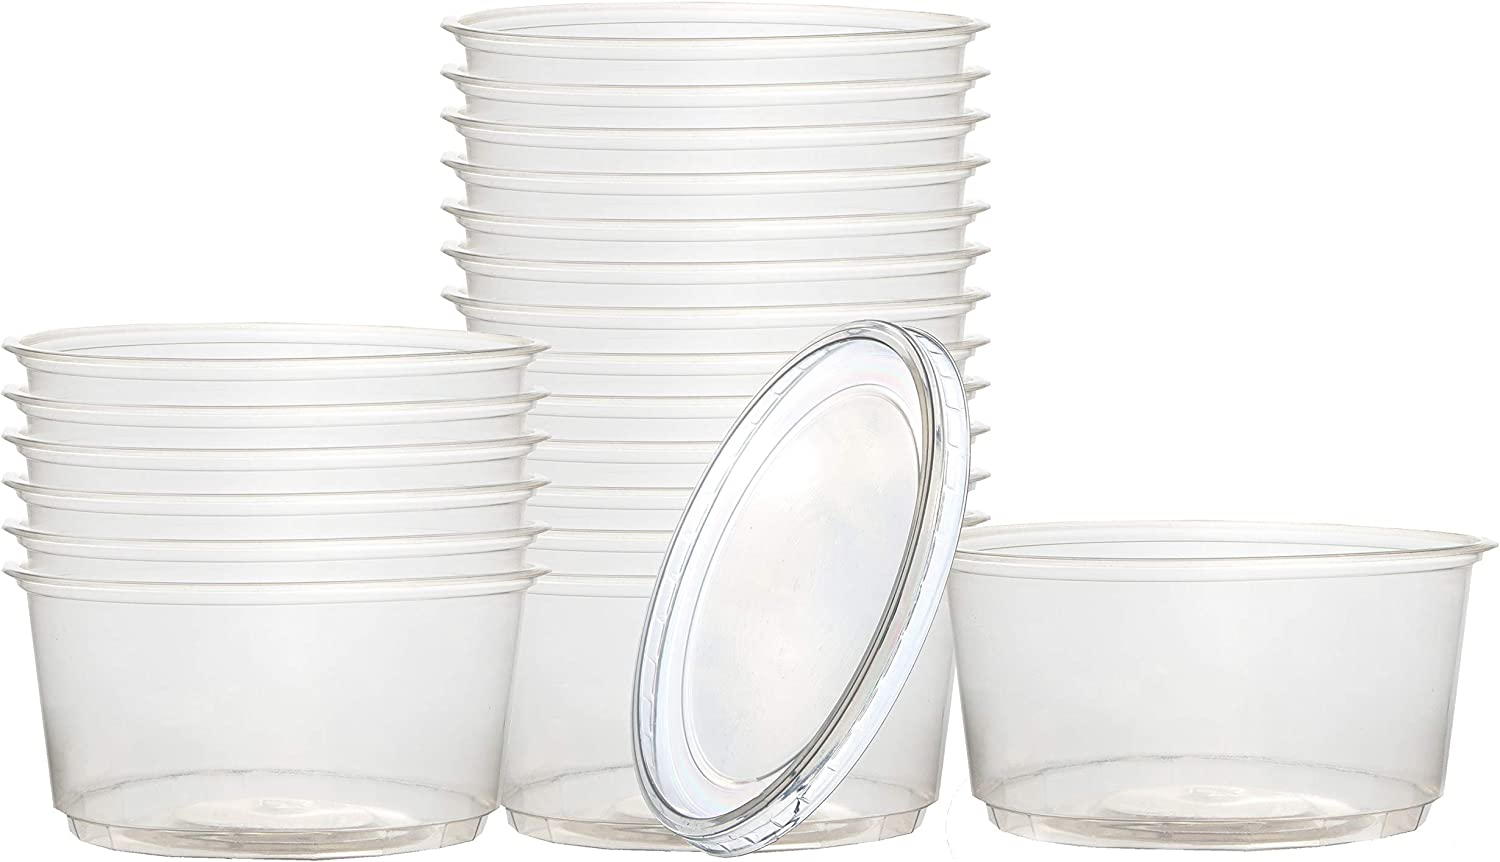 Catergoods 50 Pack of 16oz Meal Prep Containers The Food Storage Containers are Clear with Leak Proof Lids Making These Freezer Containers with Lids Perfect for all Types of Food and Soup